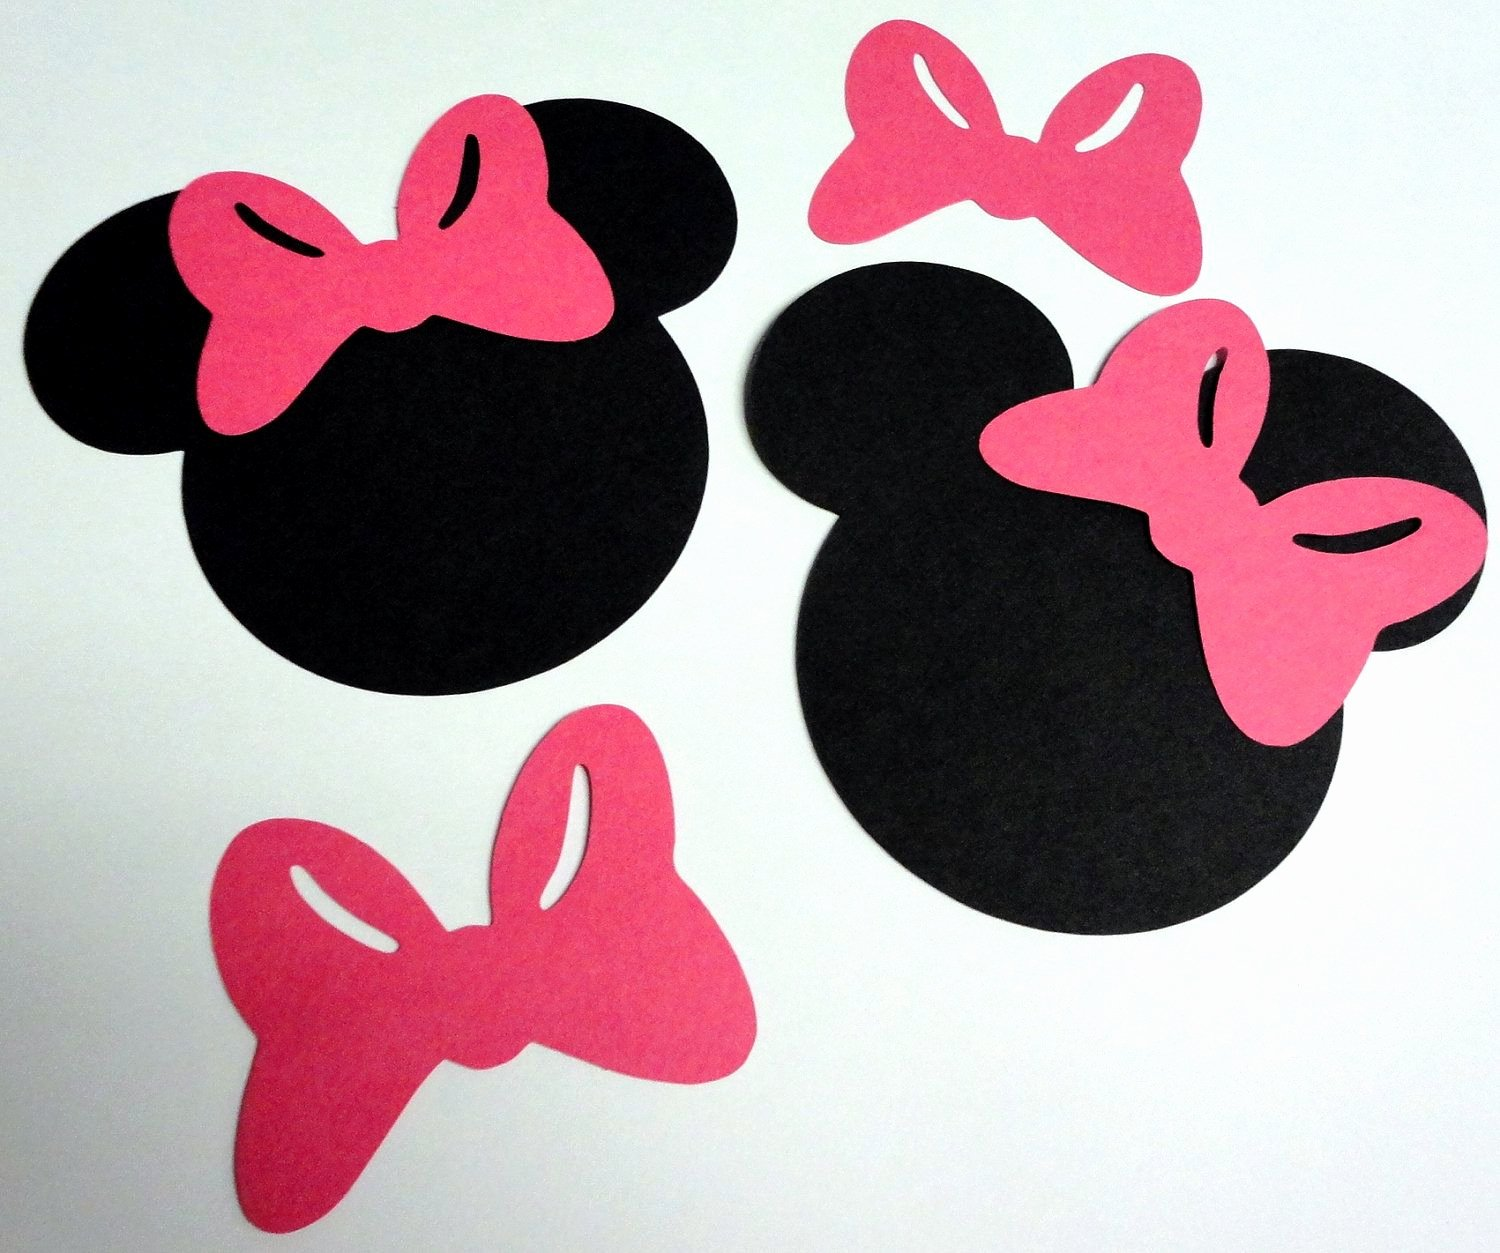 "Mouse Cut Out Template Luxury 50 5"" Minnie Mouse Head Silhouettes Black Cutouts with"